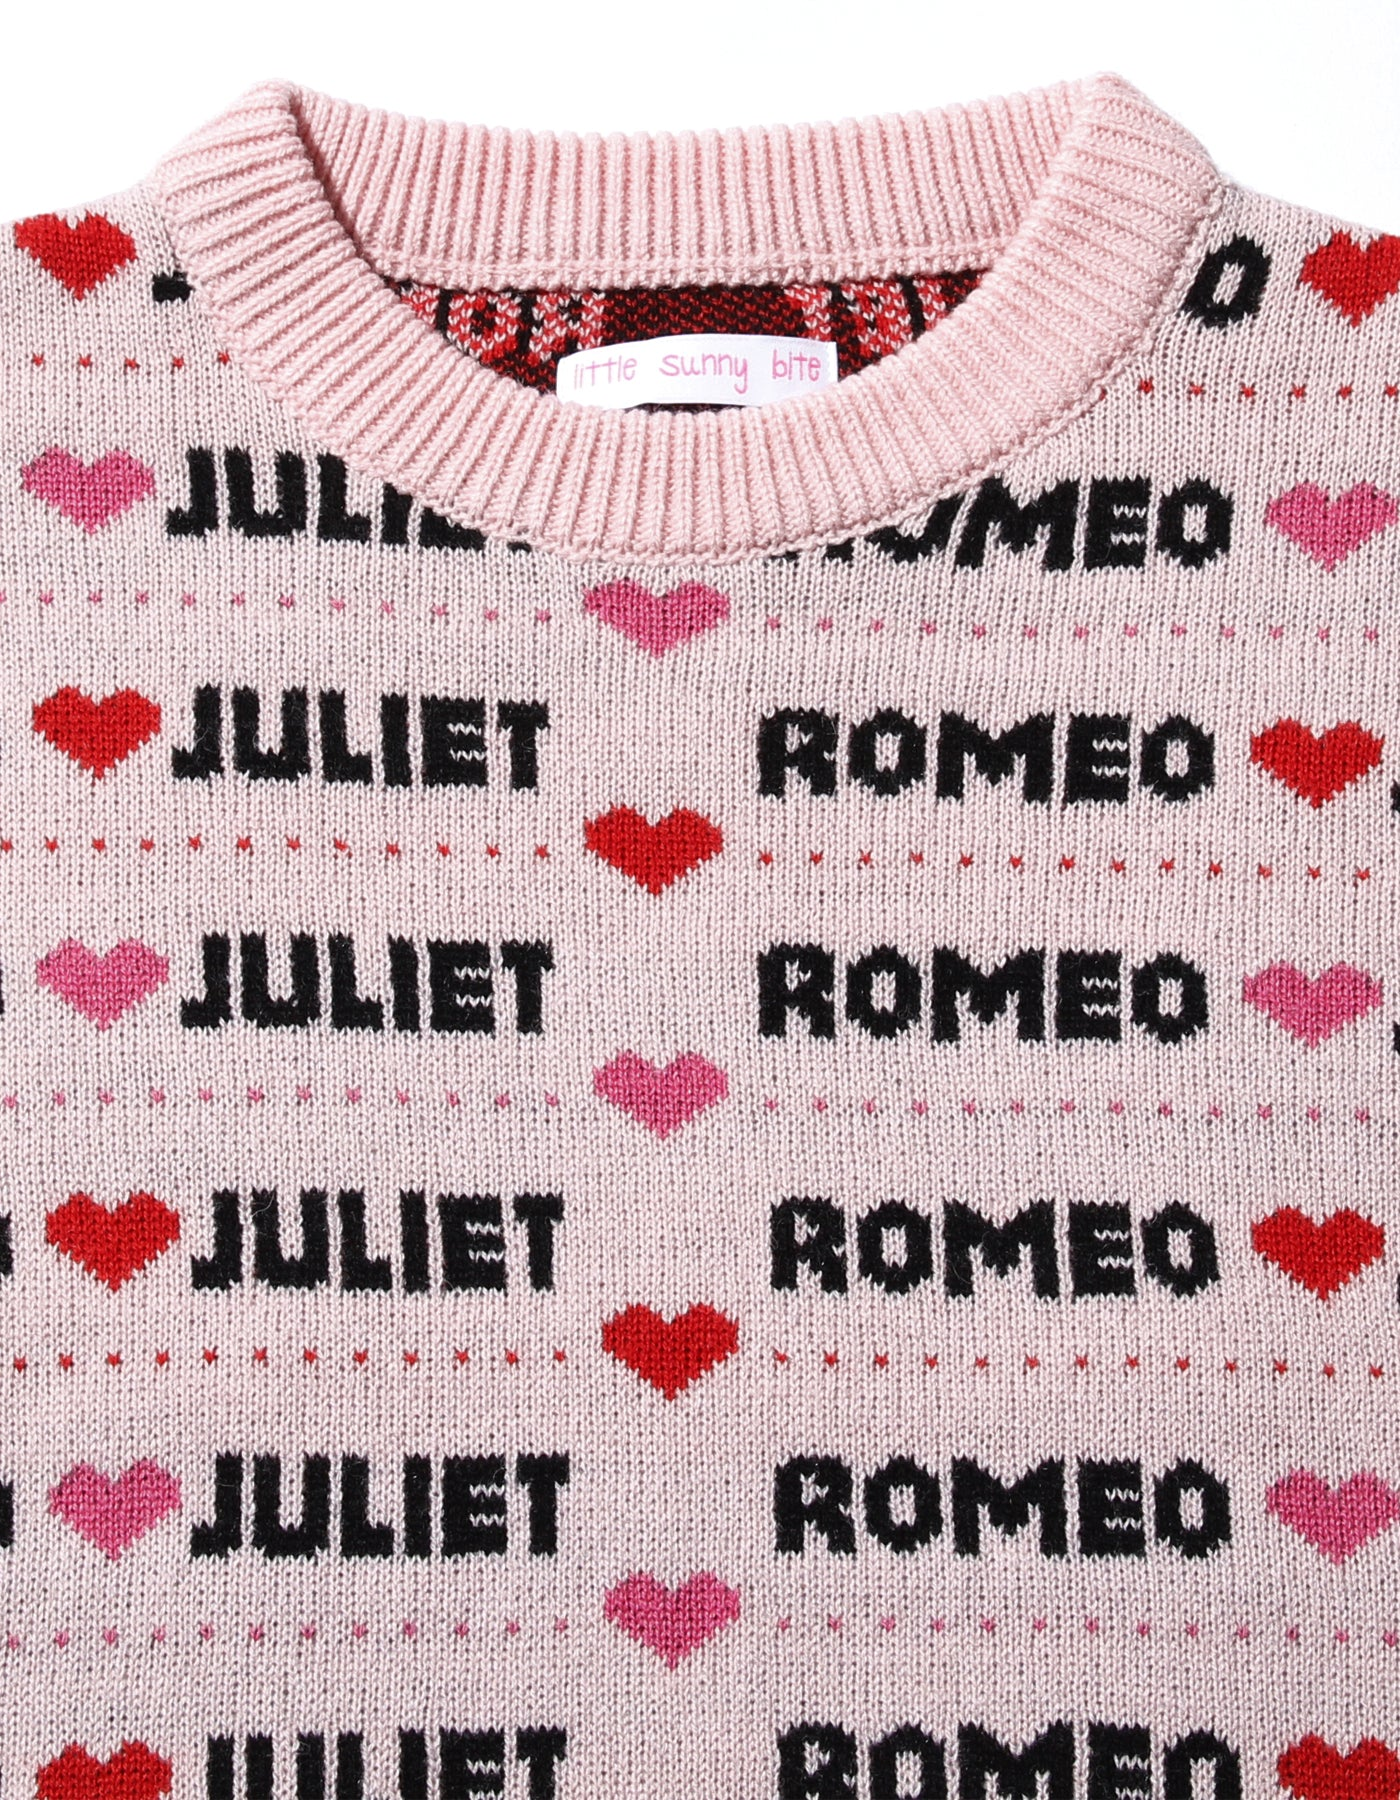 Romeo and juliet X LITTLE SUNNY BITE : Big knit top / PINK